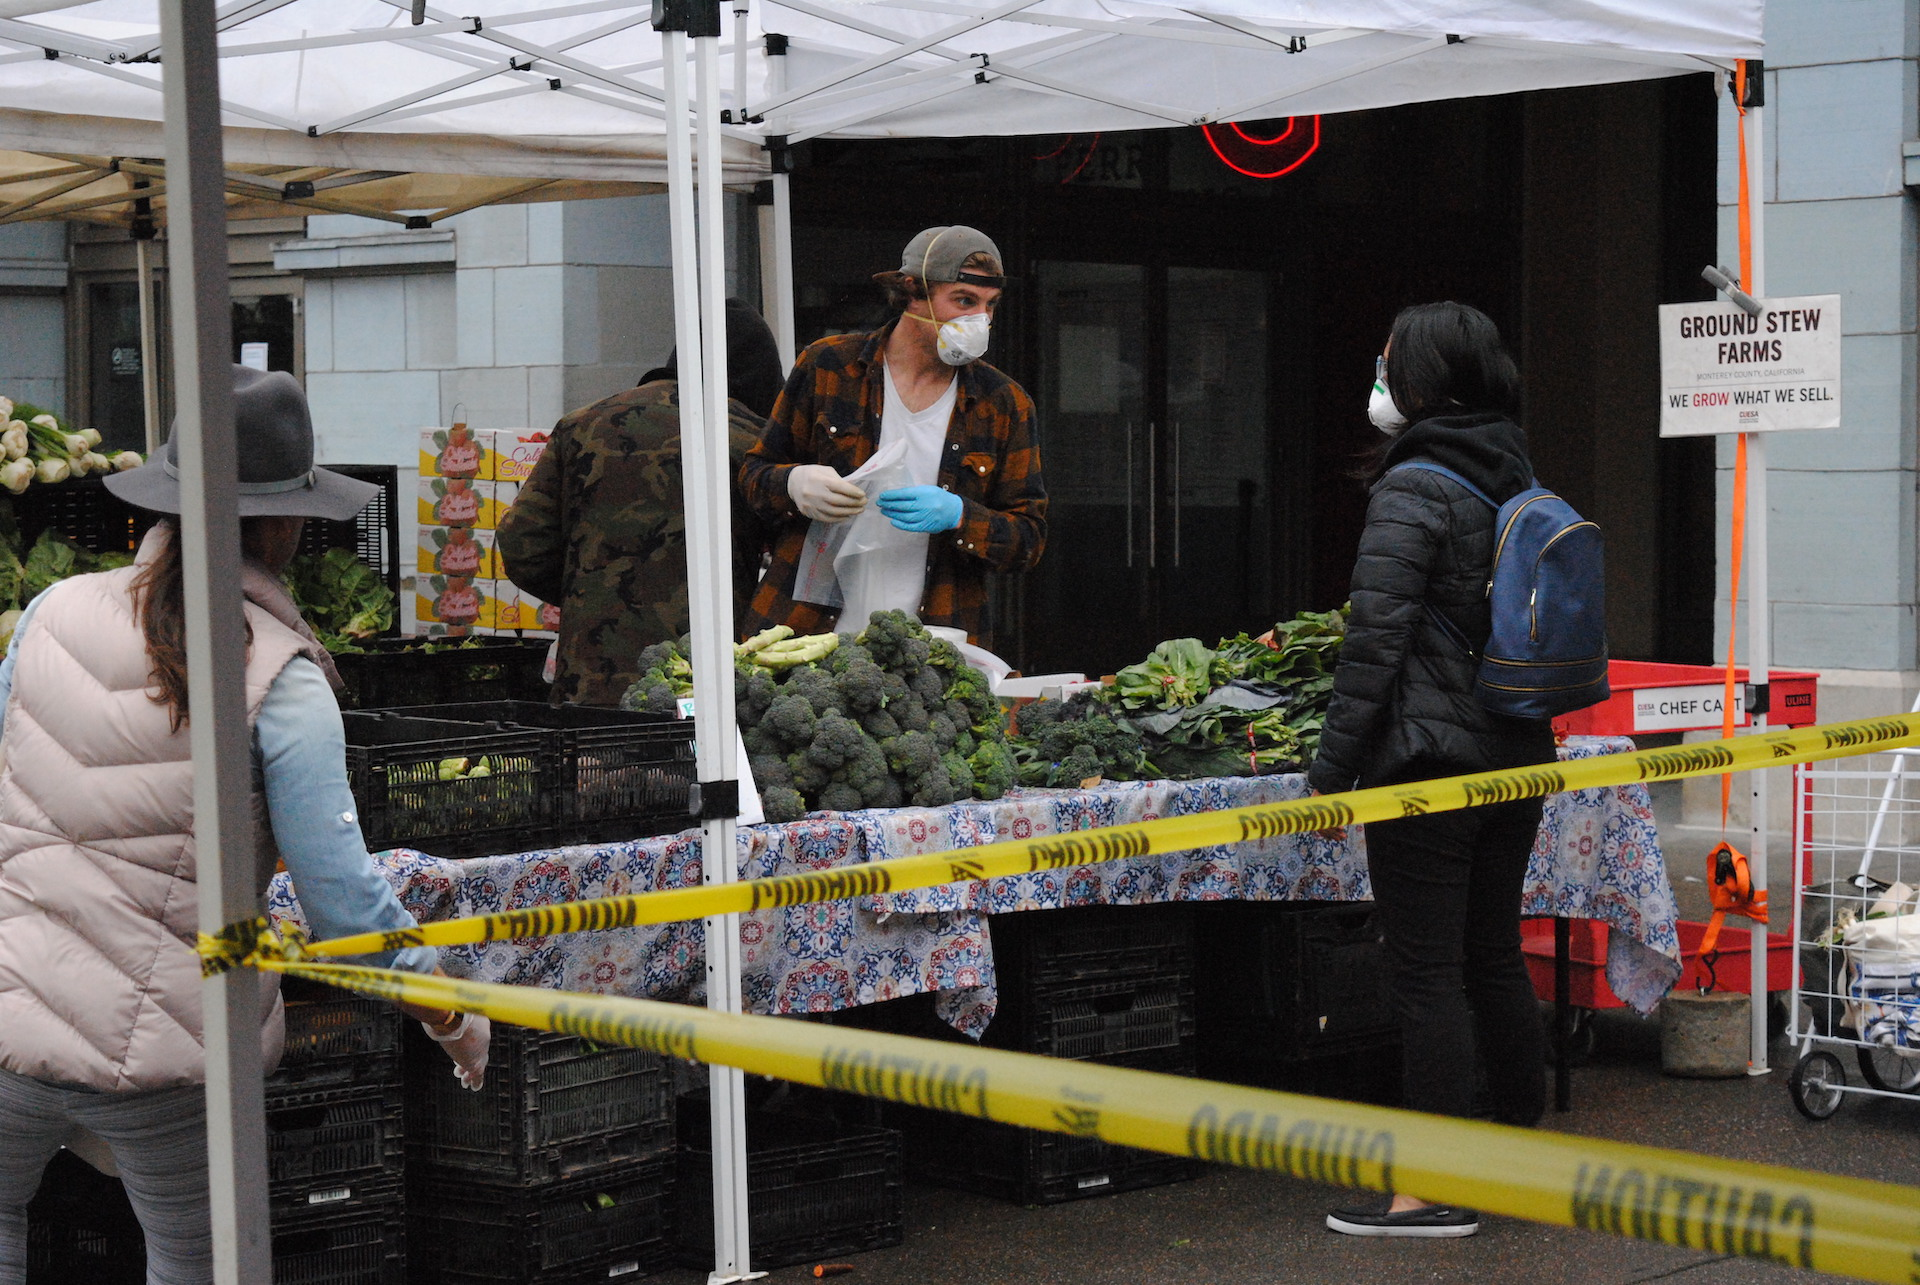 Many small farmers across the state depend on farmers markets and restaurants orders that have depleted since shelter-in-place was instituted.